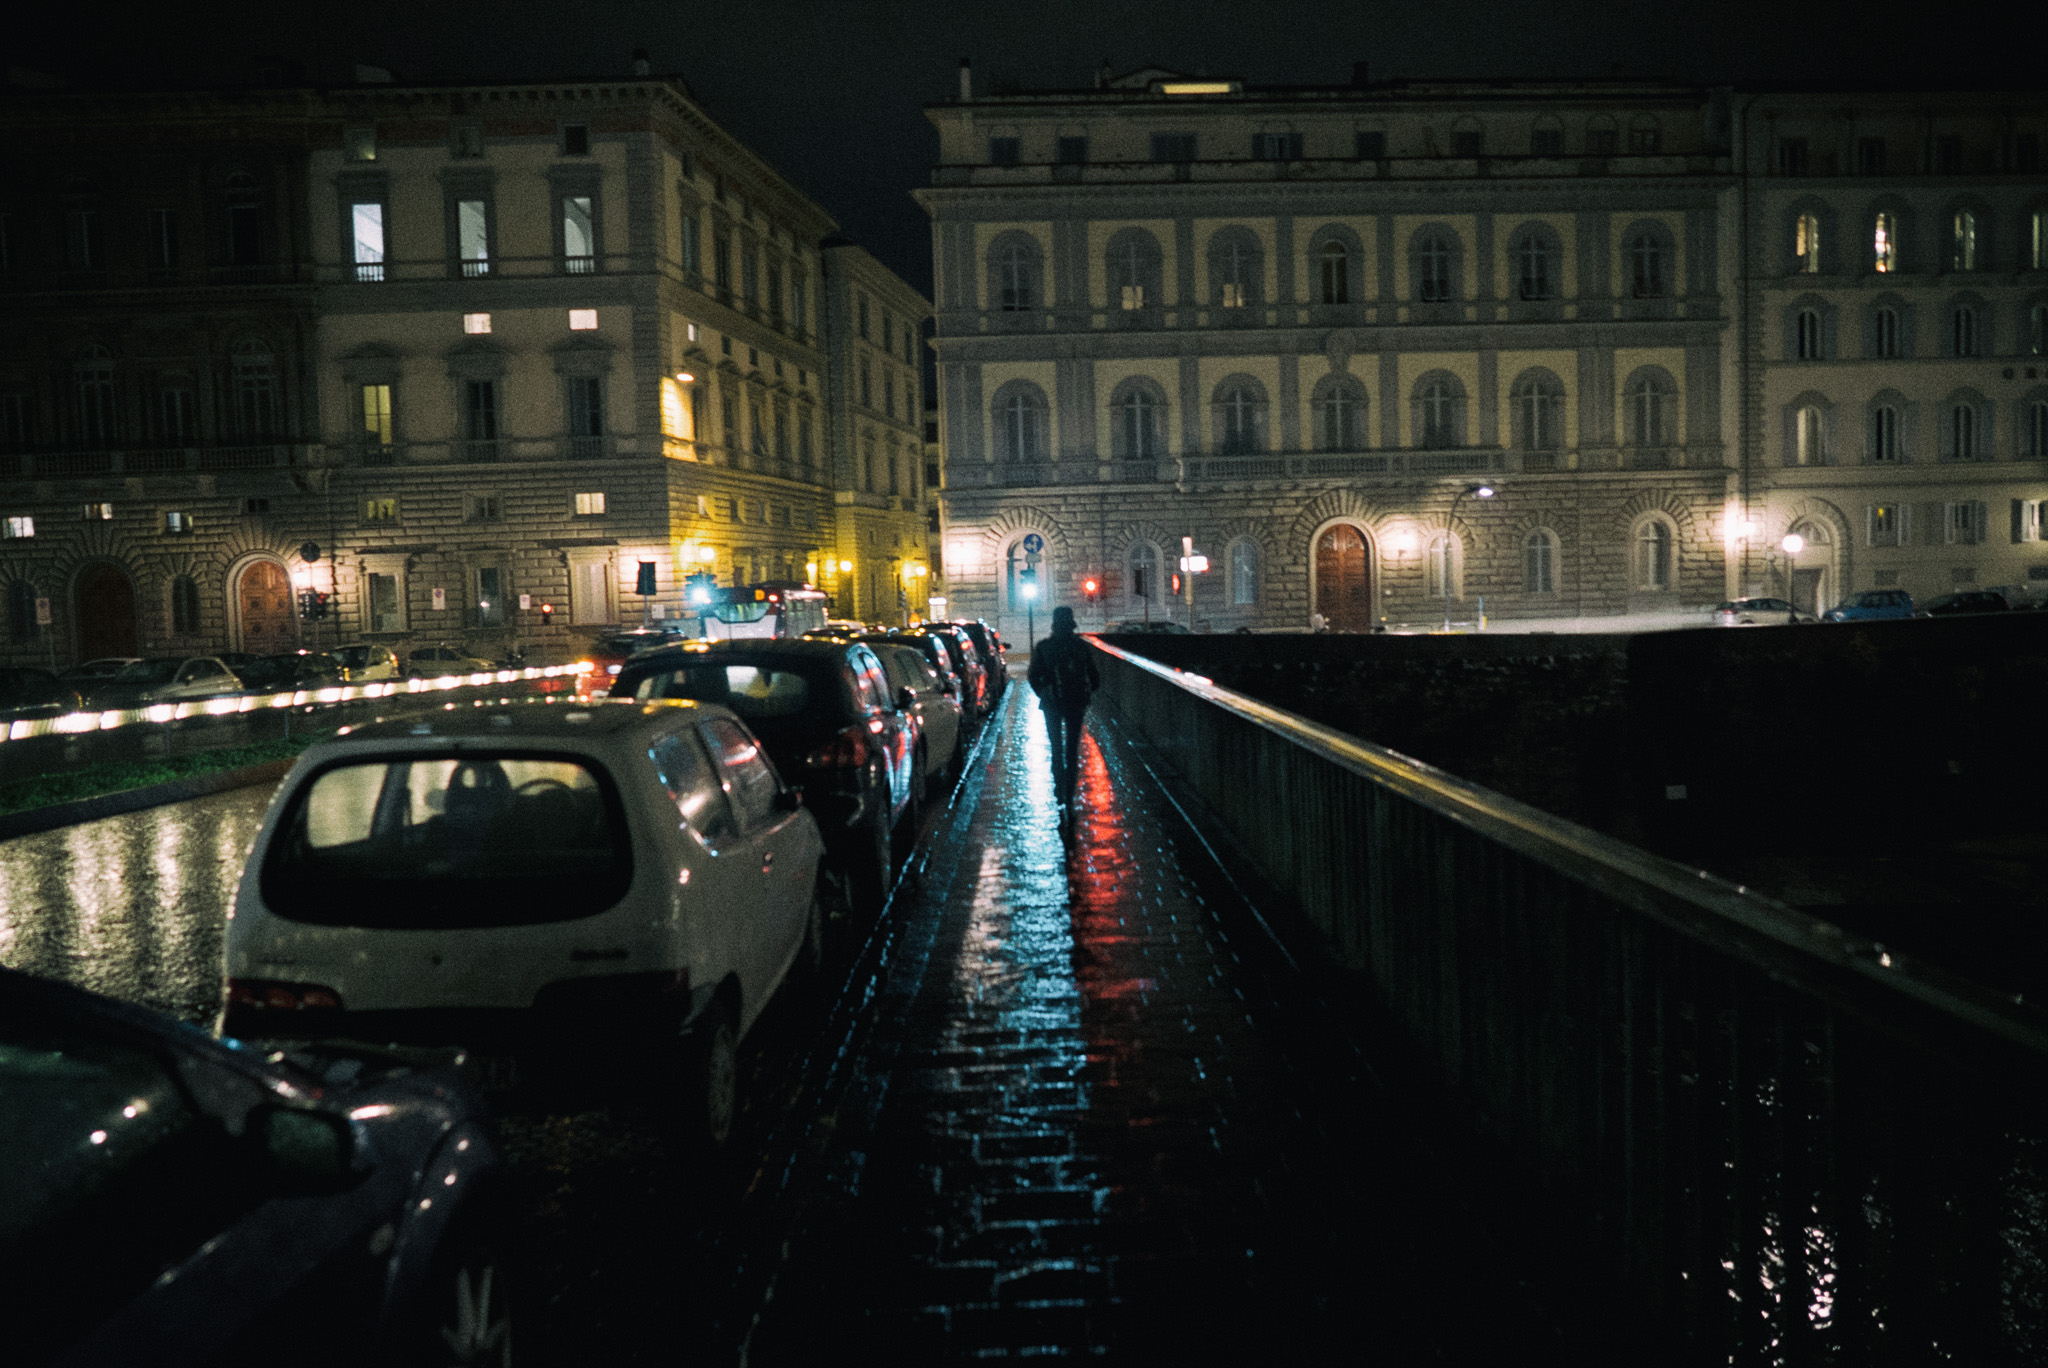 f/2.5, shutter 1/50th, and ISO 2000. Florence is often drizzly in January, but as film noir cinematographers discovered long ago, that's great for shooting streets and sidewalks at night.